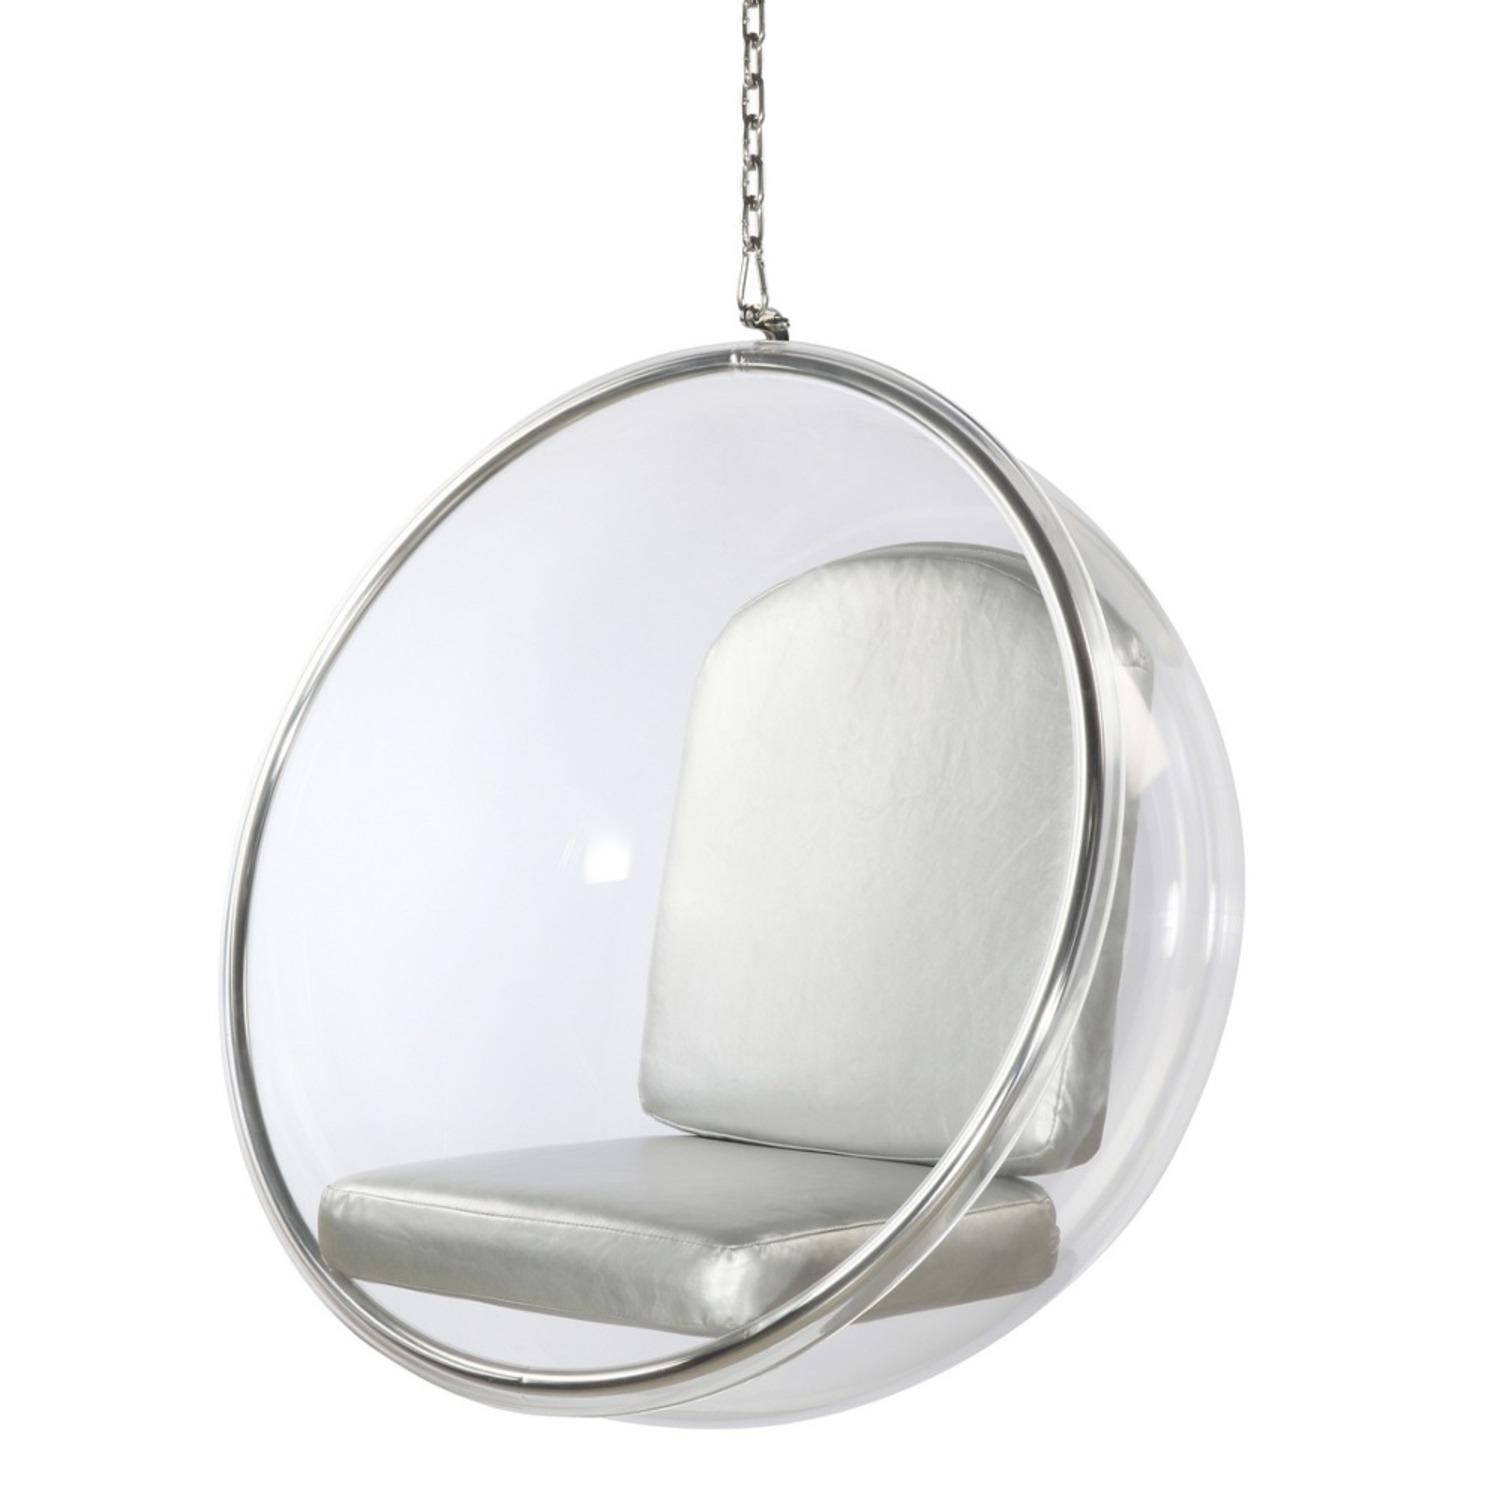 Hanging Chair In Clear Acrylic & Silver PU Leather - image-4